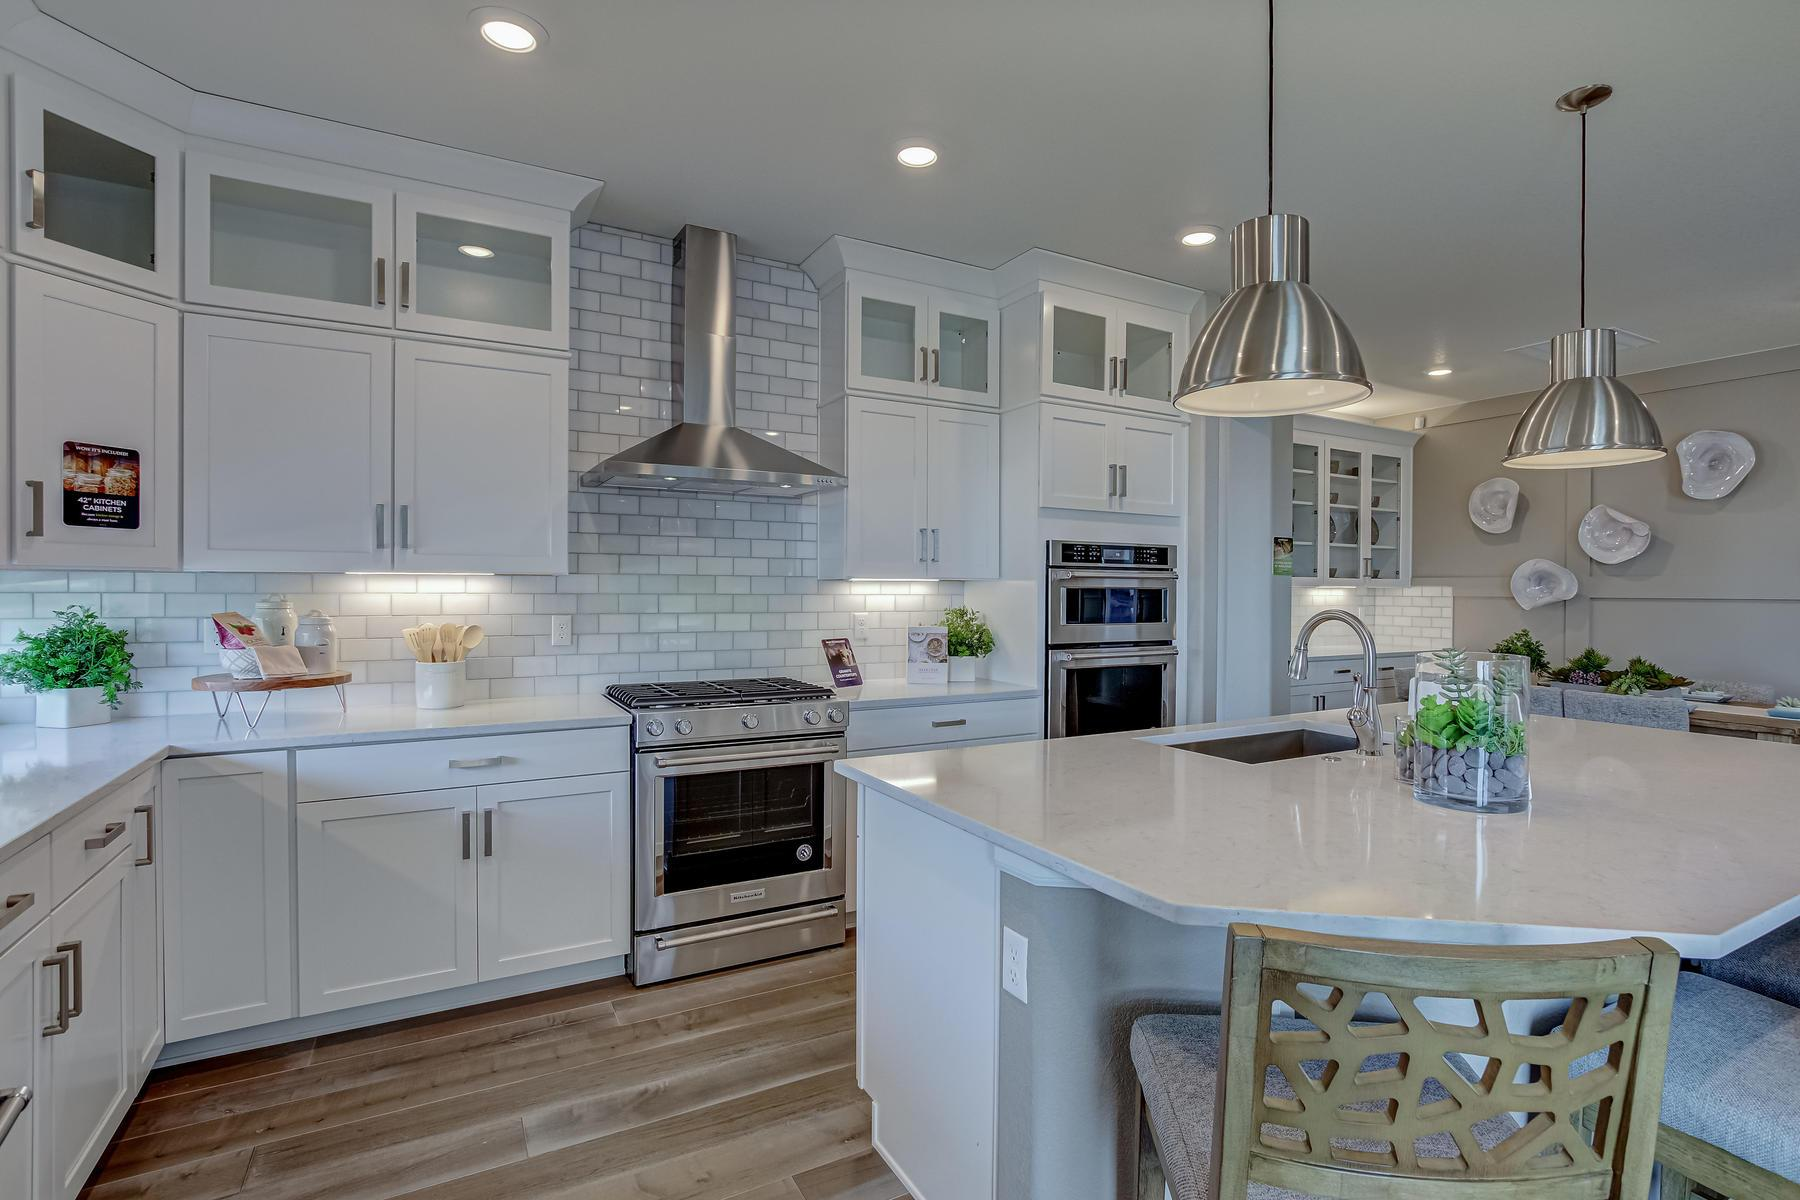 Kitchen featured in the Aspen By OakwoodLife in Denver, CO